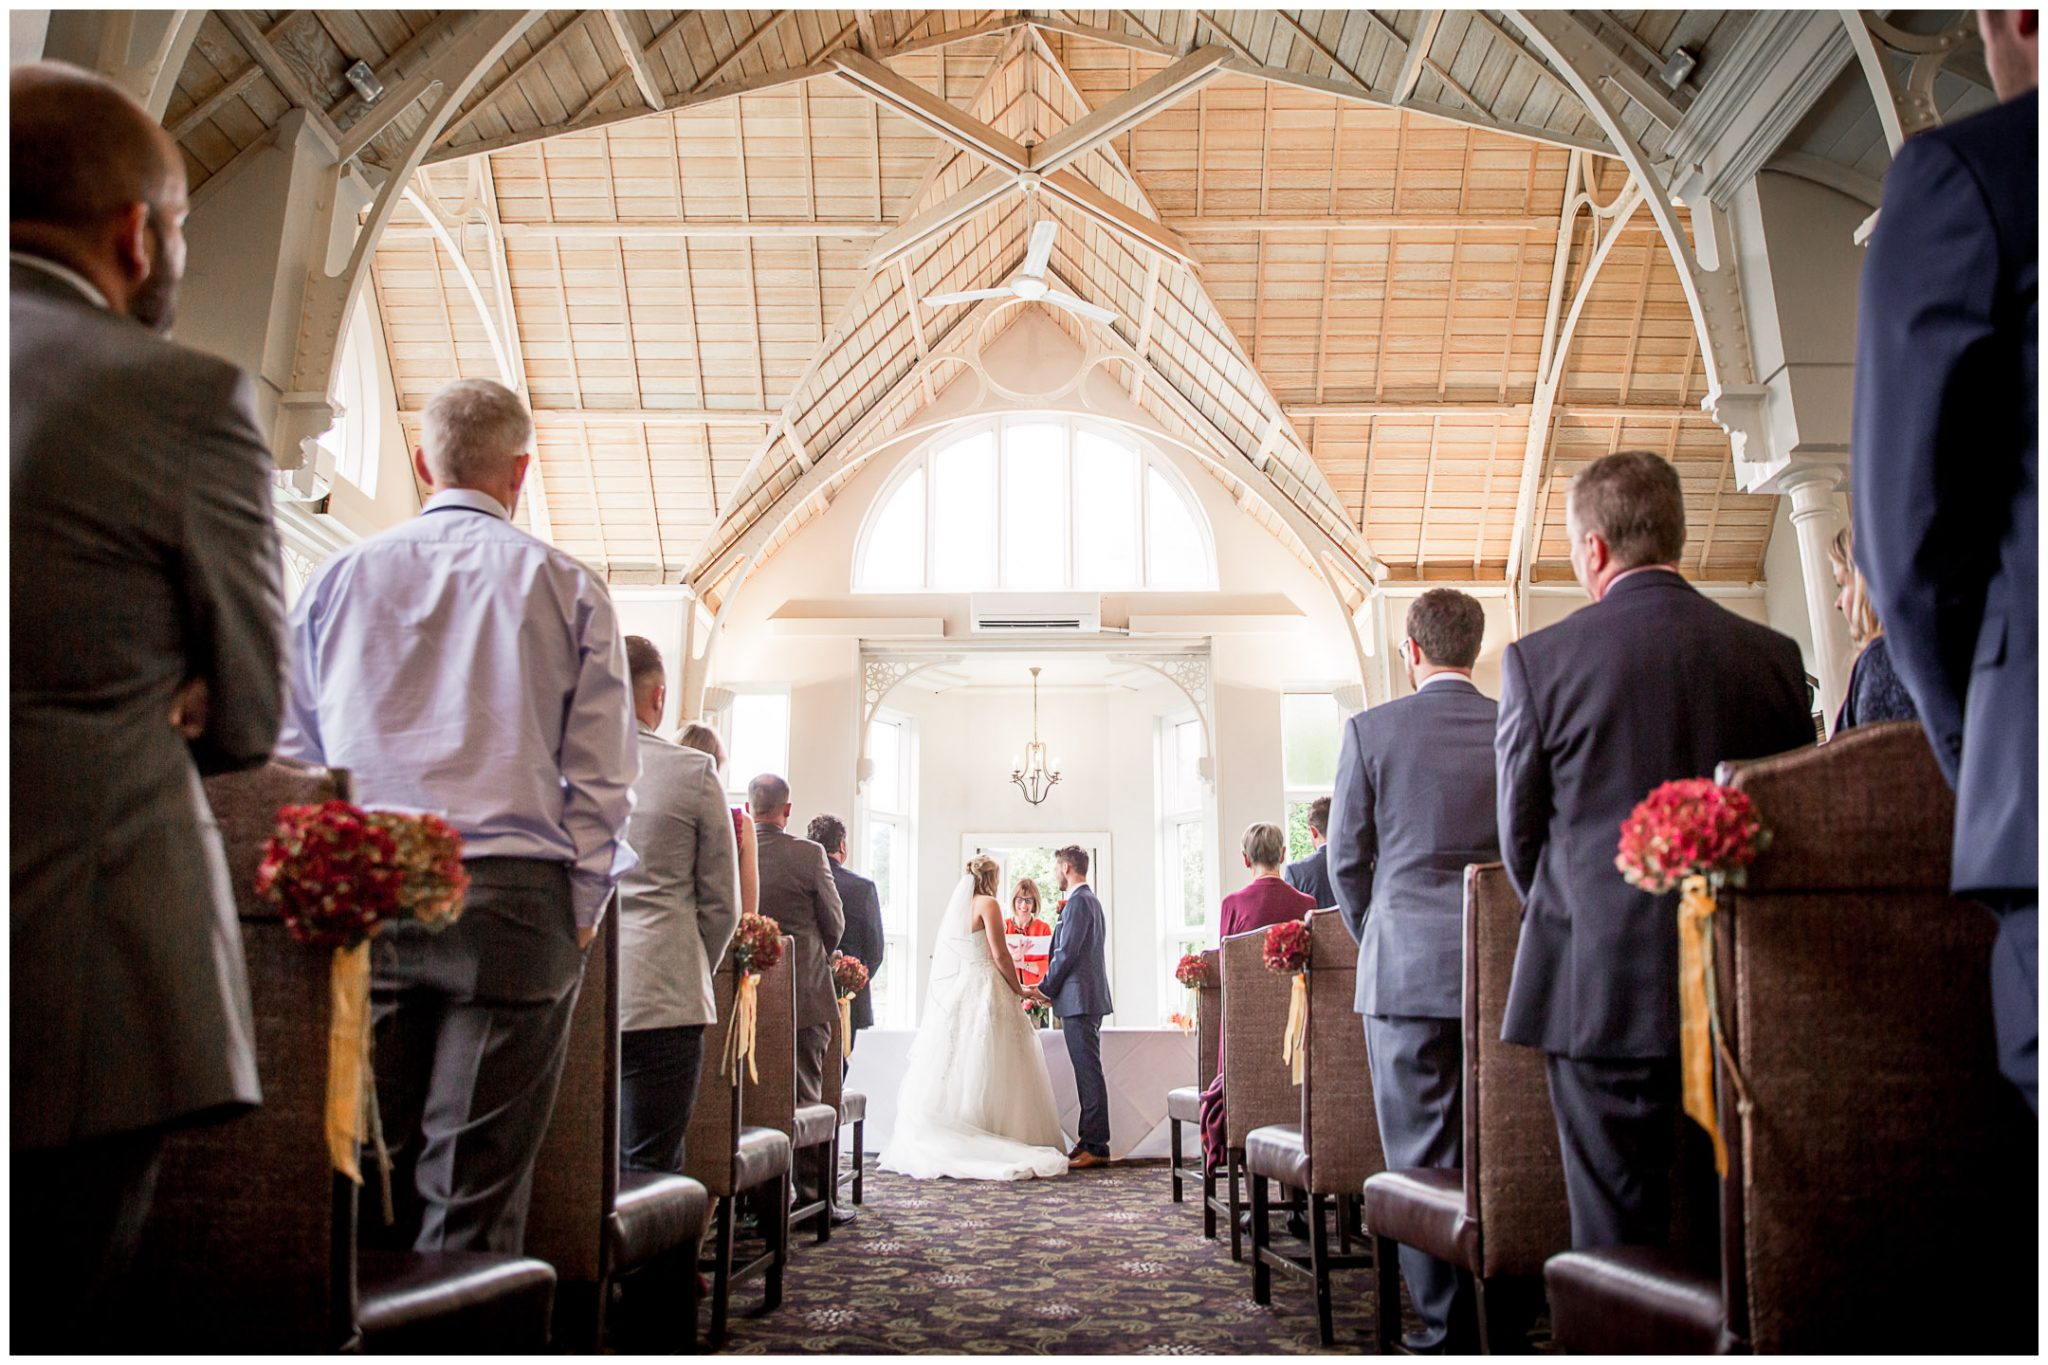 Audleys Wood wedding photograhy ceremony room photographed from the back